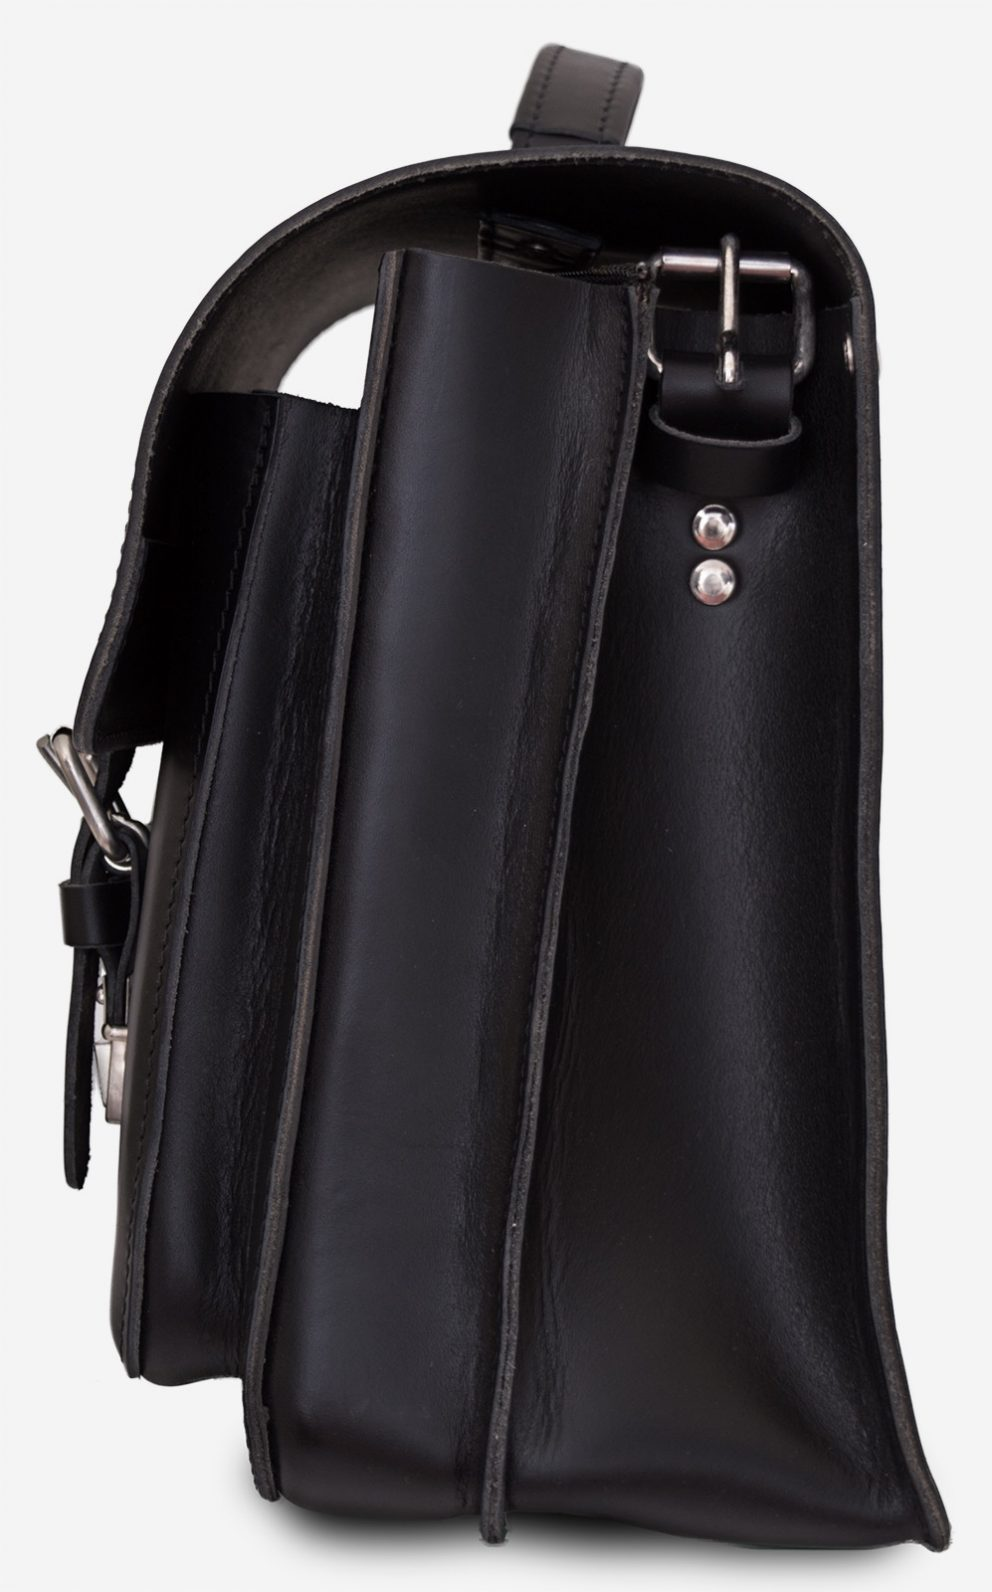 Side view of black leather satchel briefcase with asymmetric front pockets 112137.